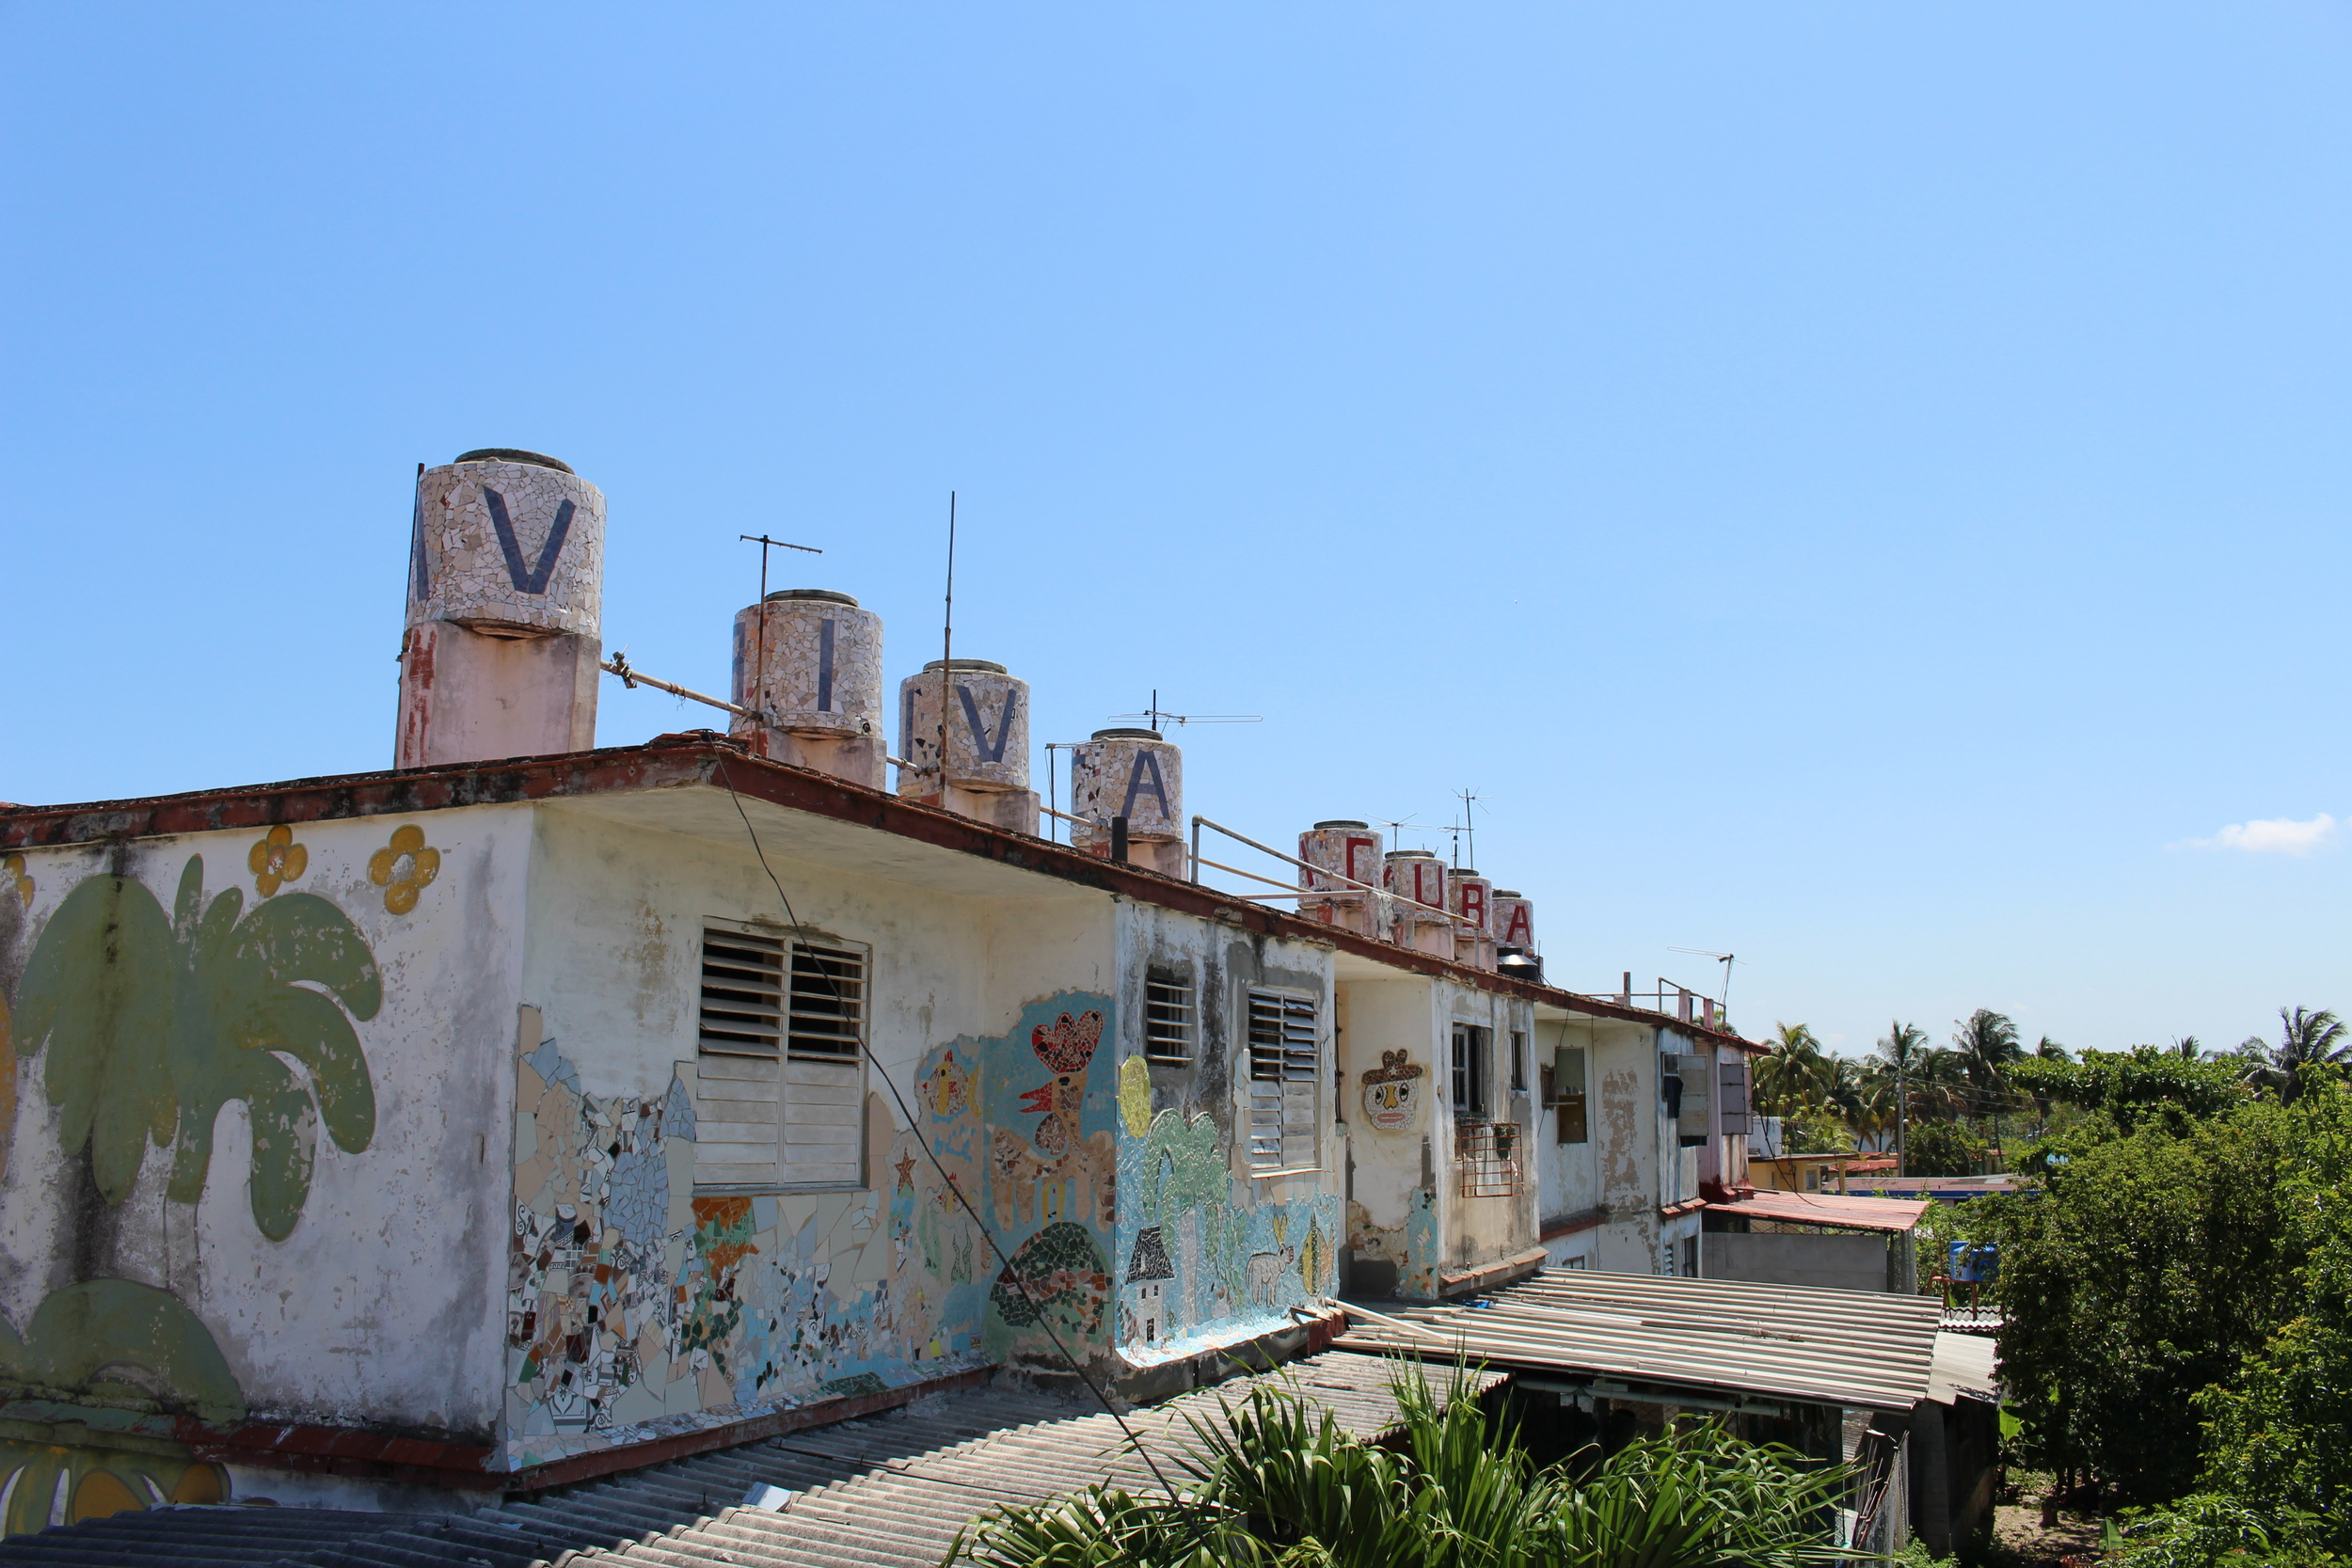 Jose Fuster ran out of room in his own house and started putting his art throughout the whole neighborhood.